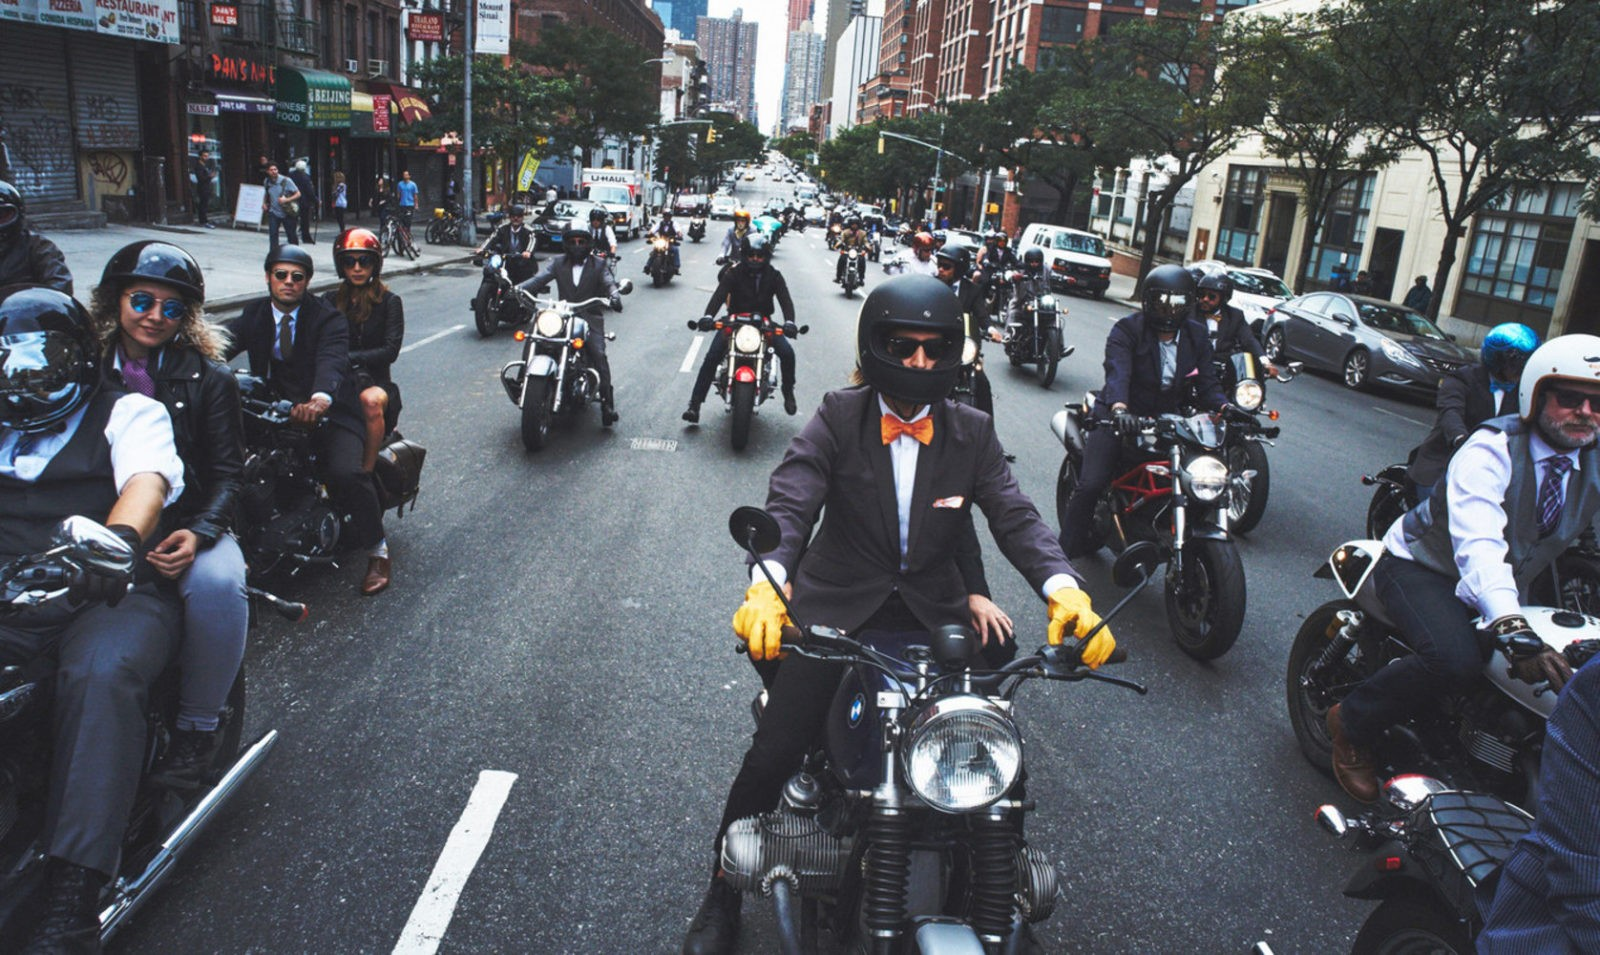 DGR New York 2015 2